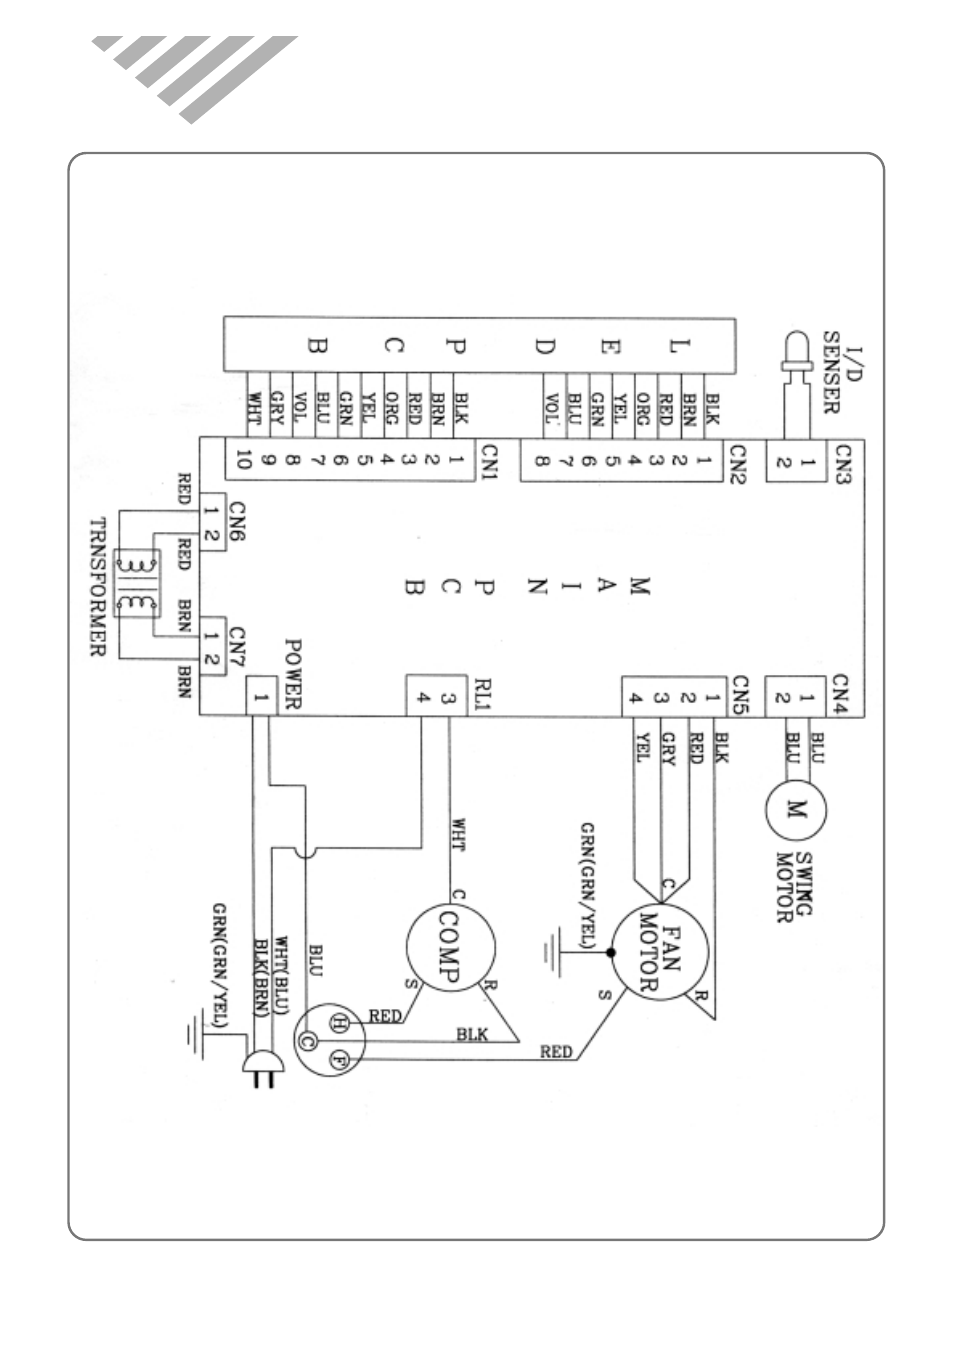 Wiring diagram | Daewoo ROOM AIR CONDITIONER DWC-121R User Manual | Page 13  /